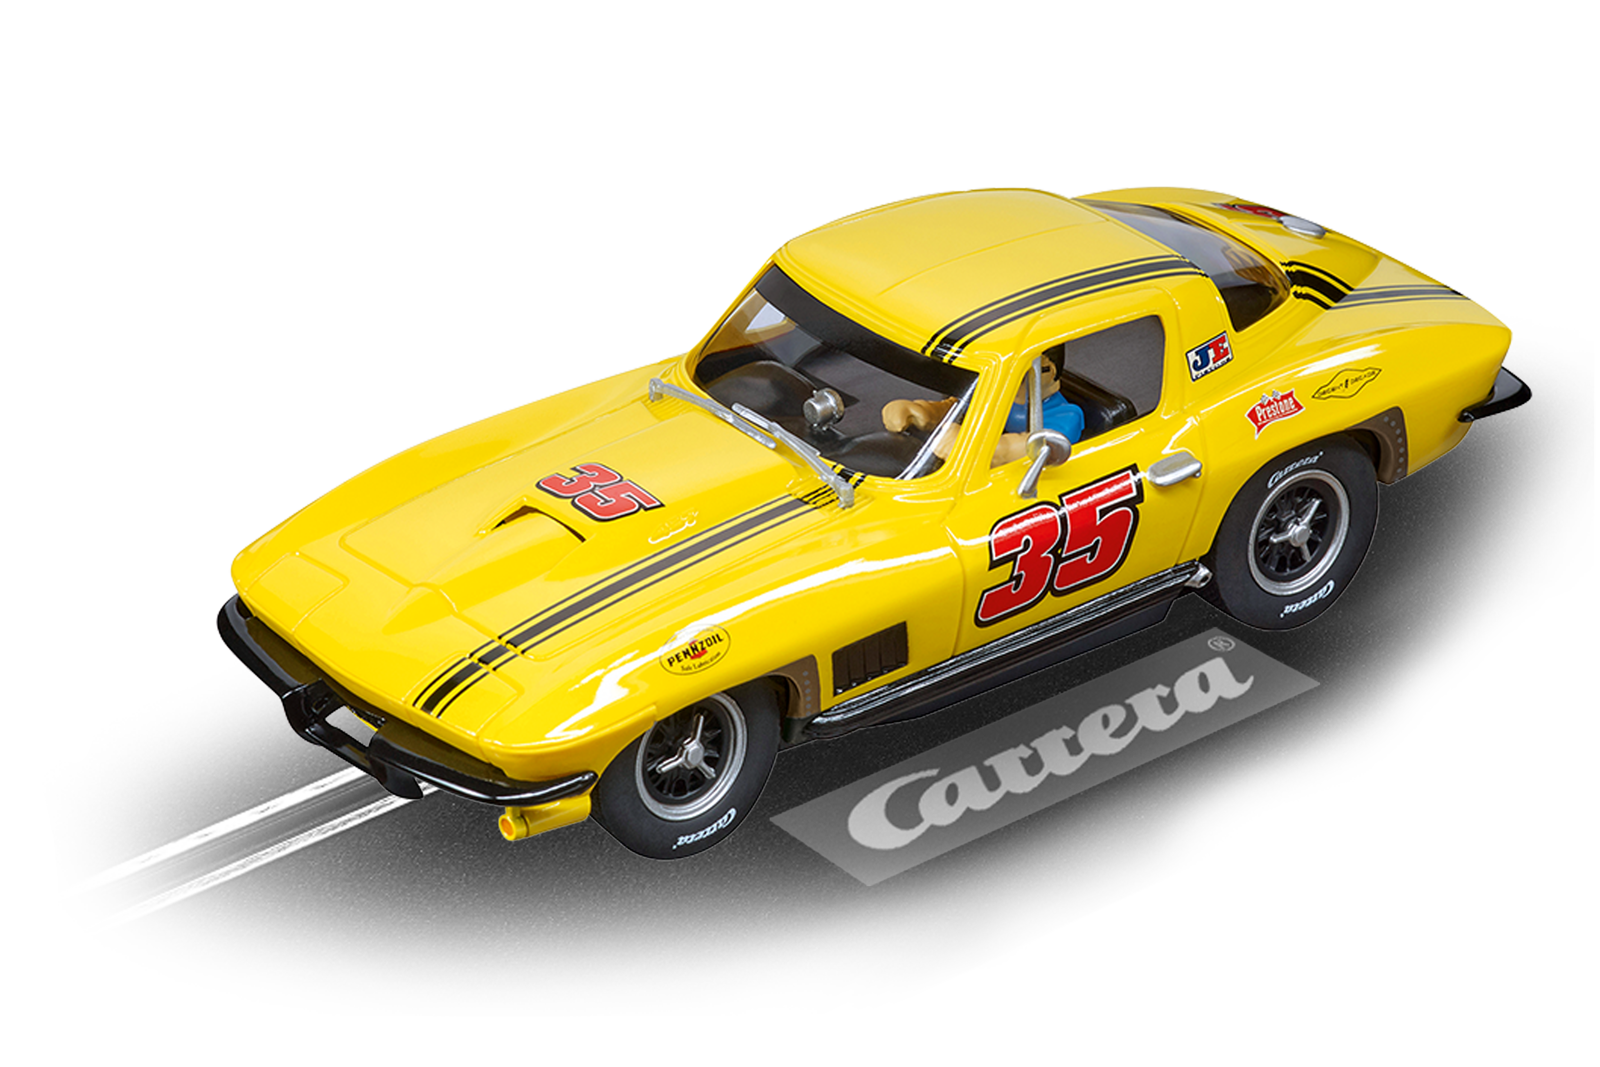 Chevrolet Corvette Sting Ray #35 (30906)